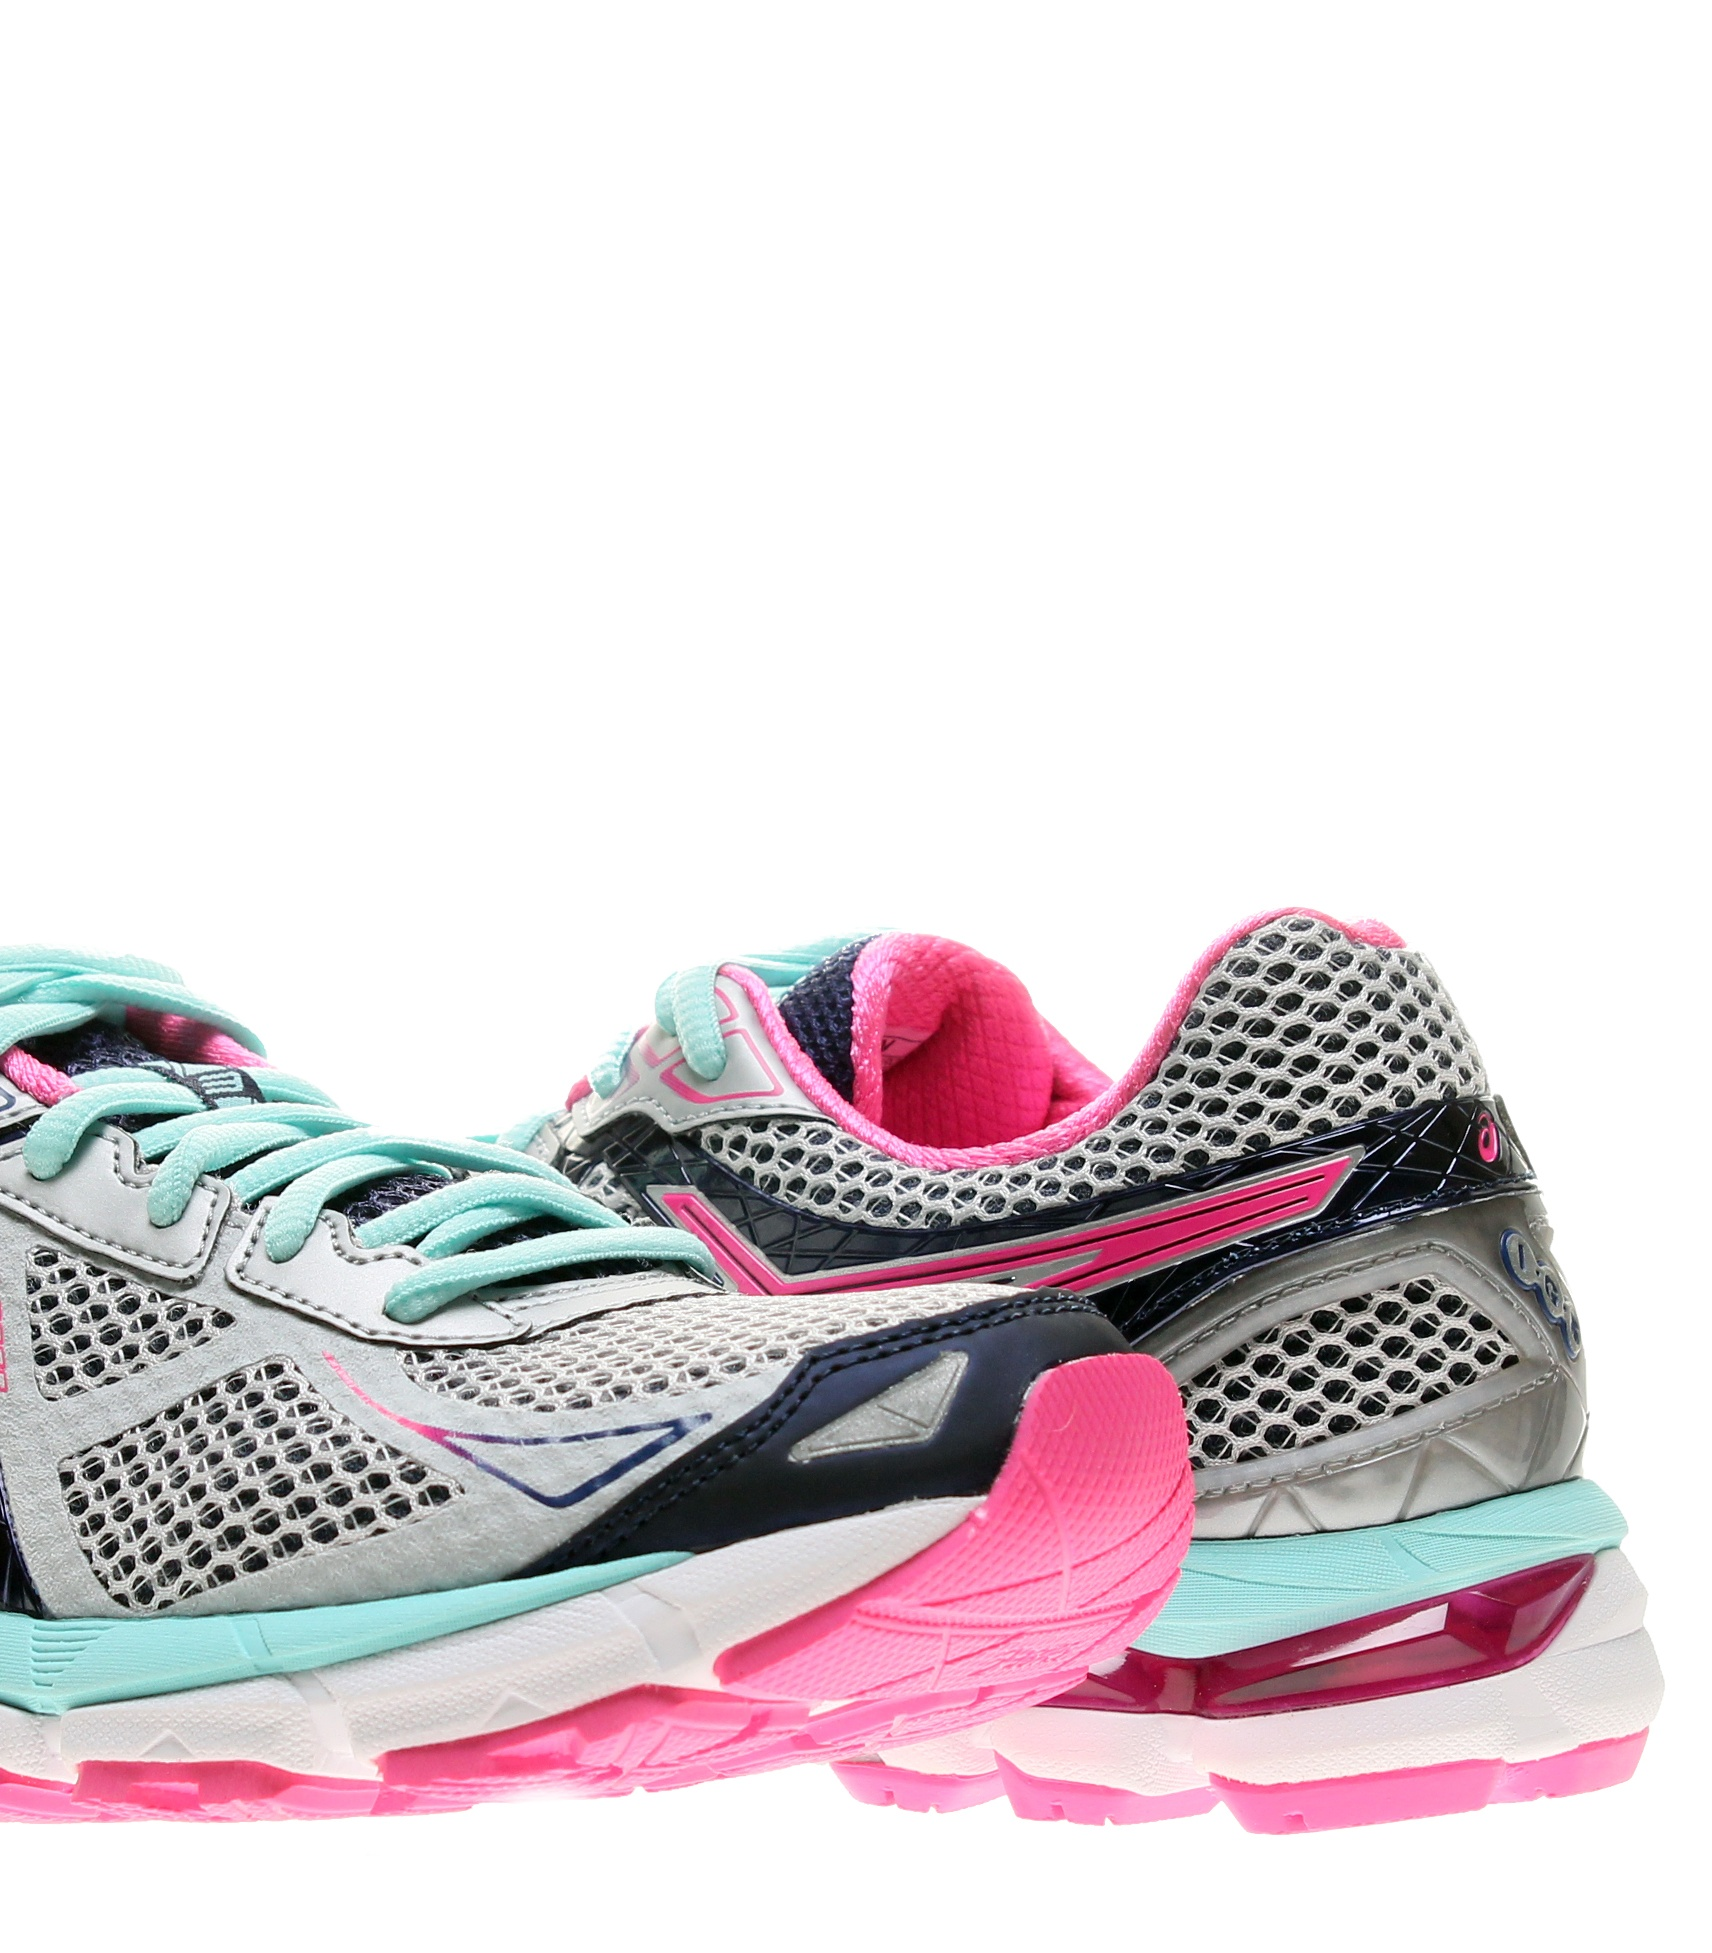 Asics GT-2000 3 Lightning Hot Pink Women's Running Shoes T550N-9335 by Asics